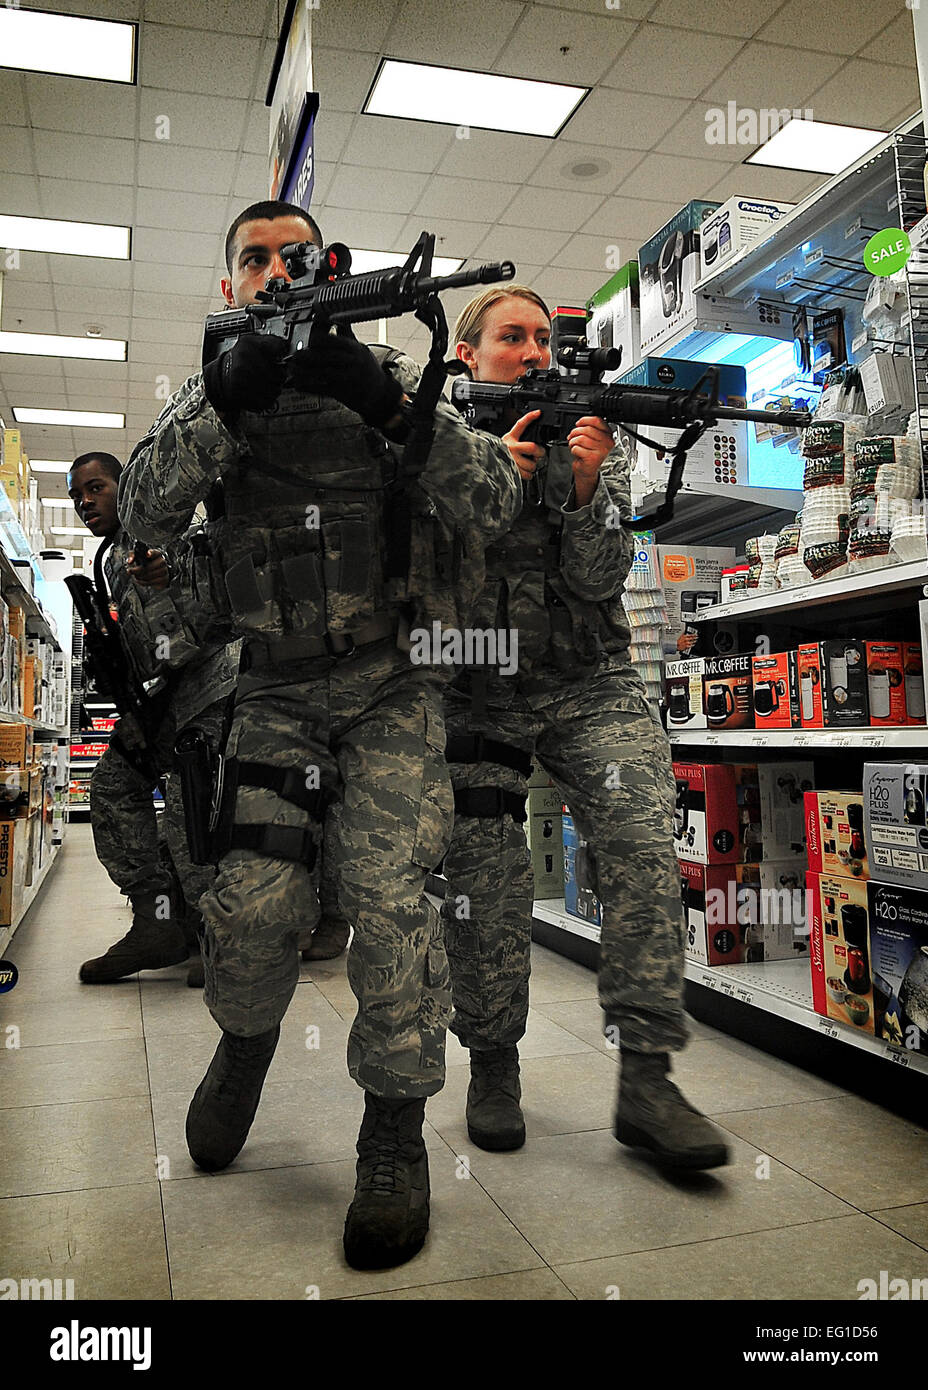 us air force security forces